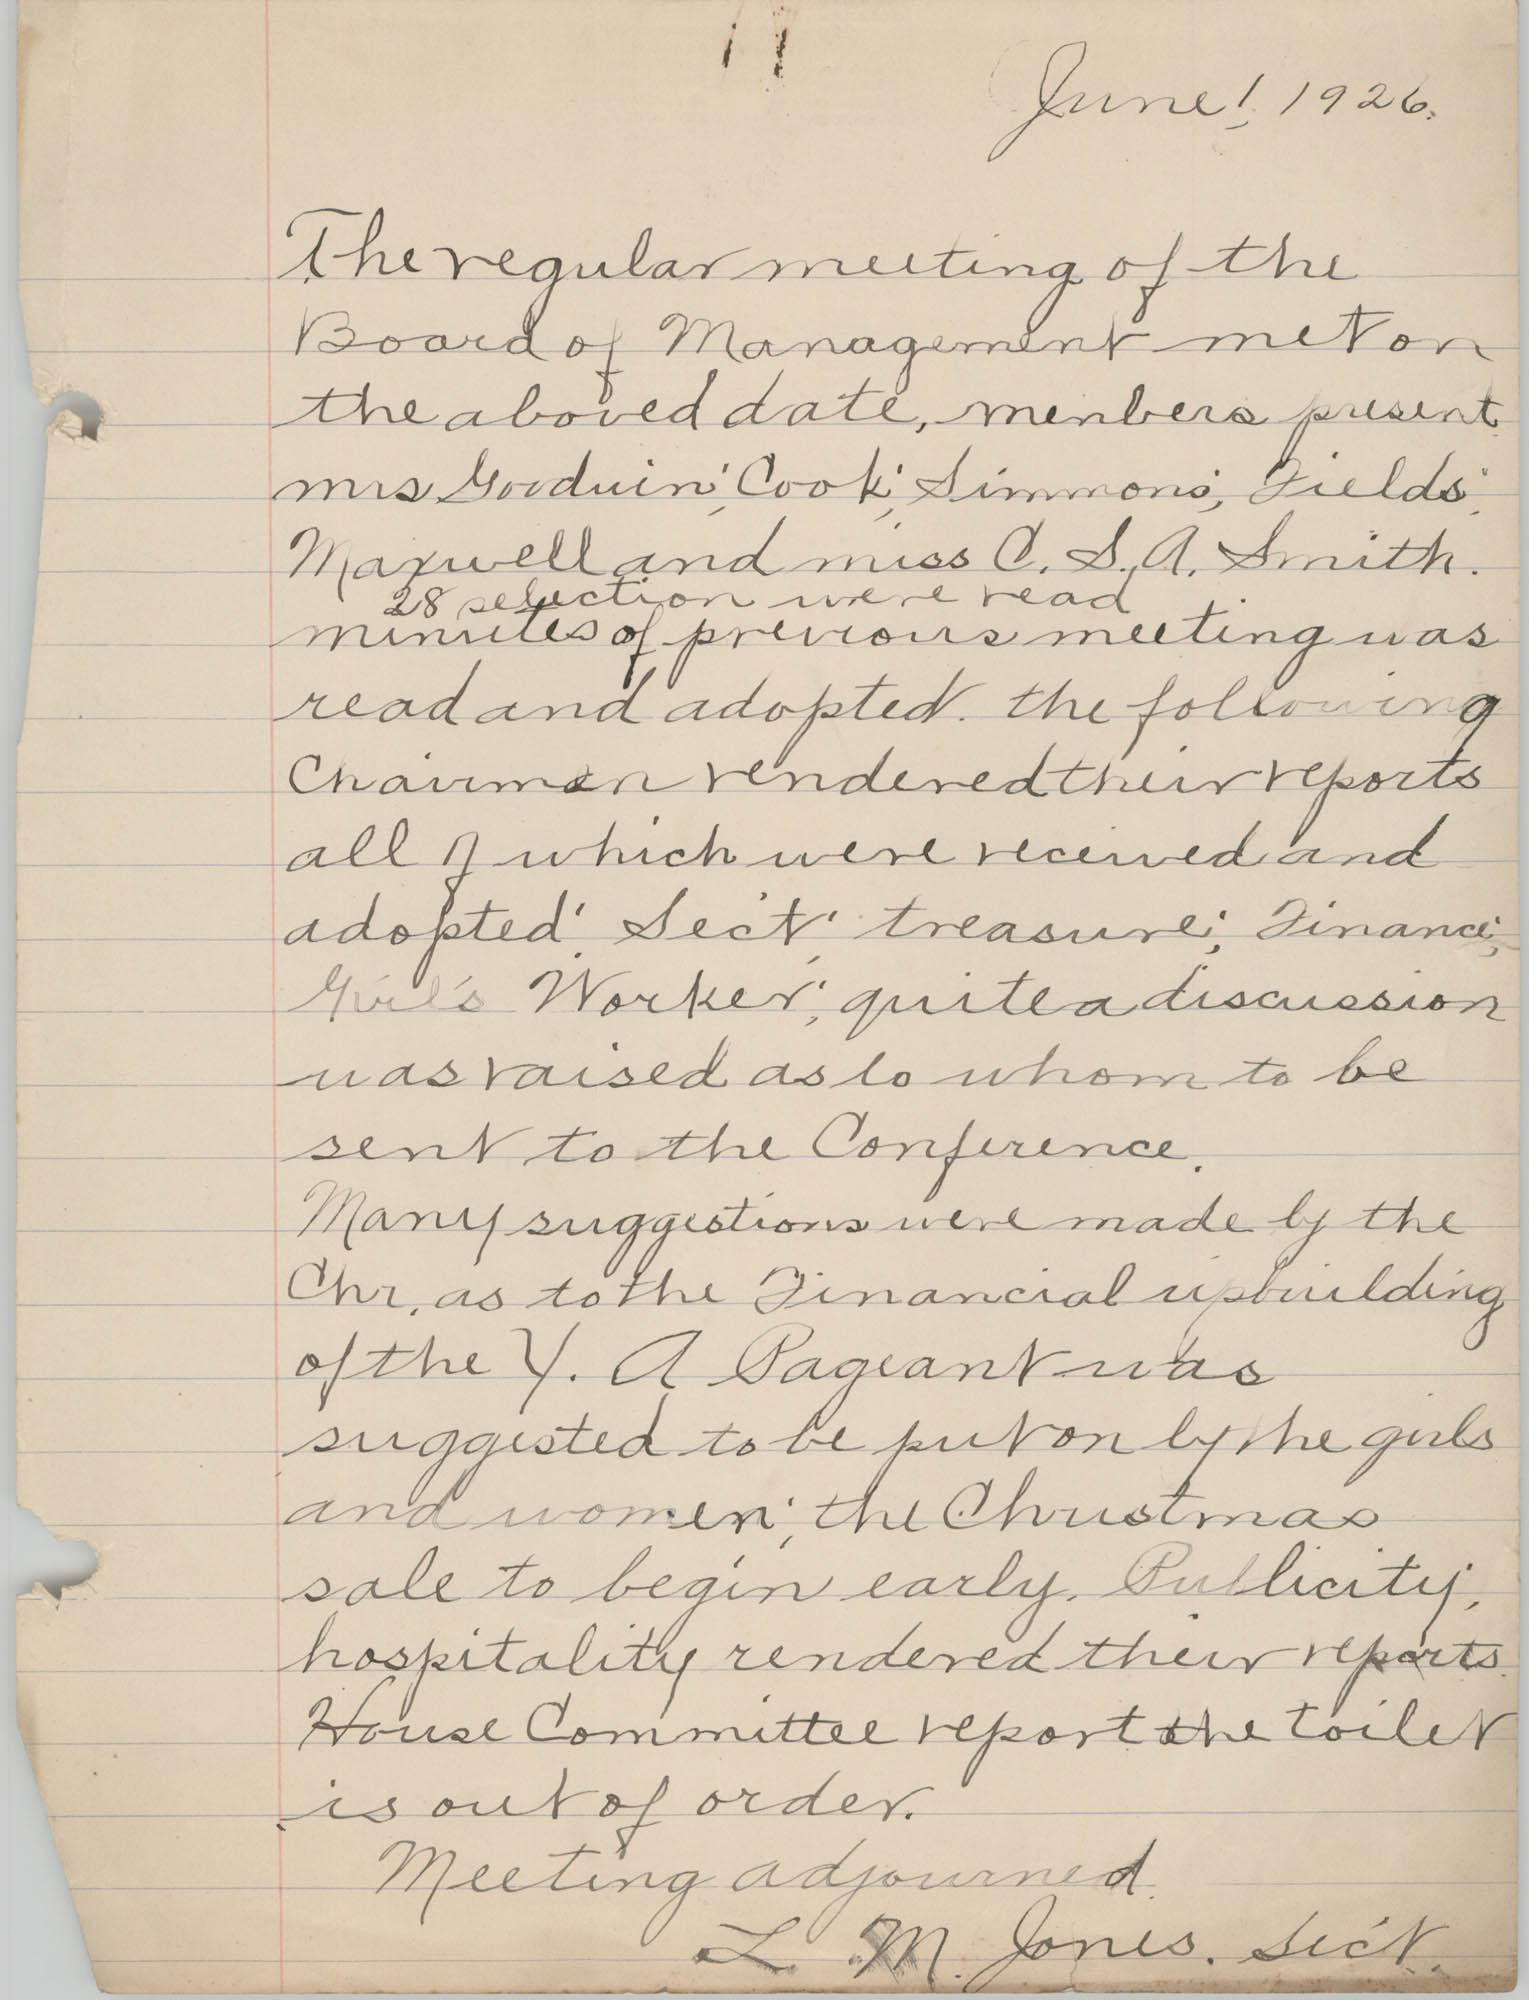 Minutes to the Board of Management, Coming Street Y.W.C.A., June 1, 1926